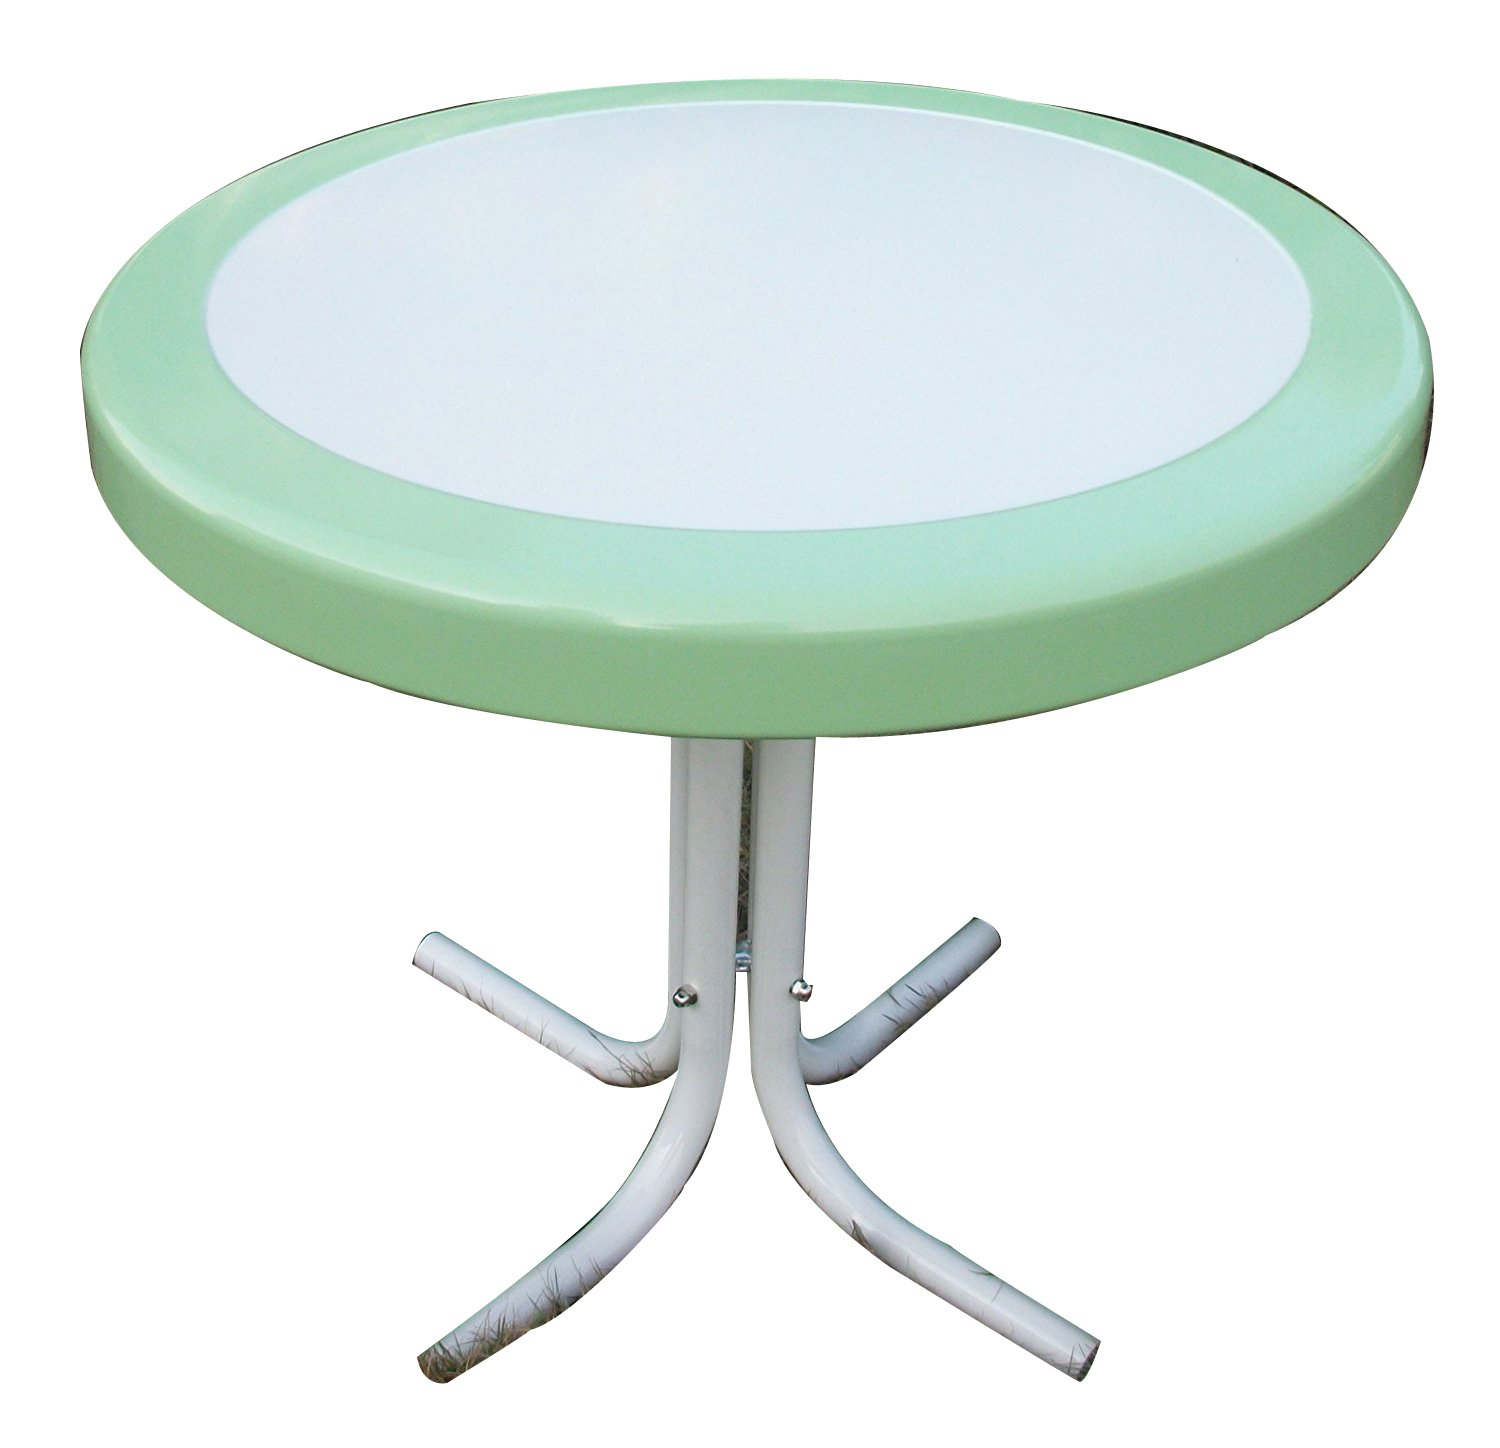 4D Concepts 71320 Metal Retro Round Table